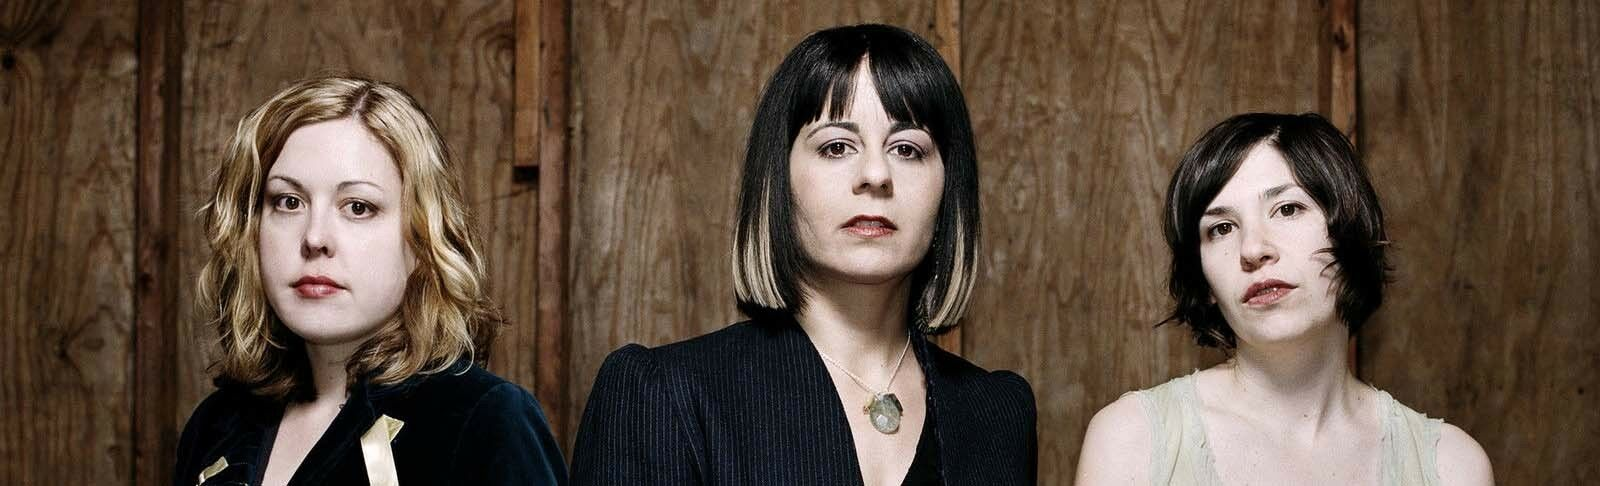 Hell No featuring Sleater Kinney and more